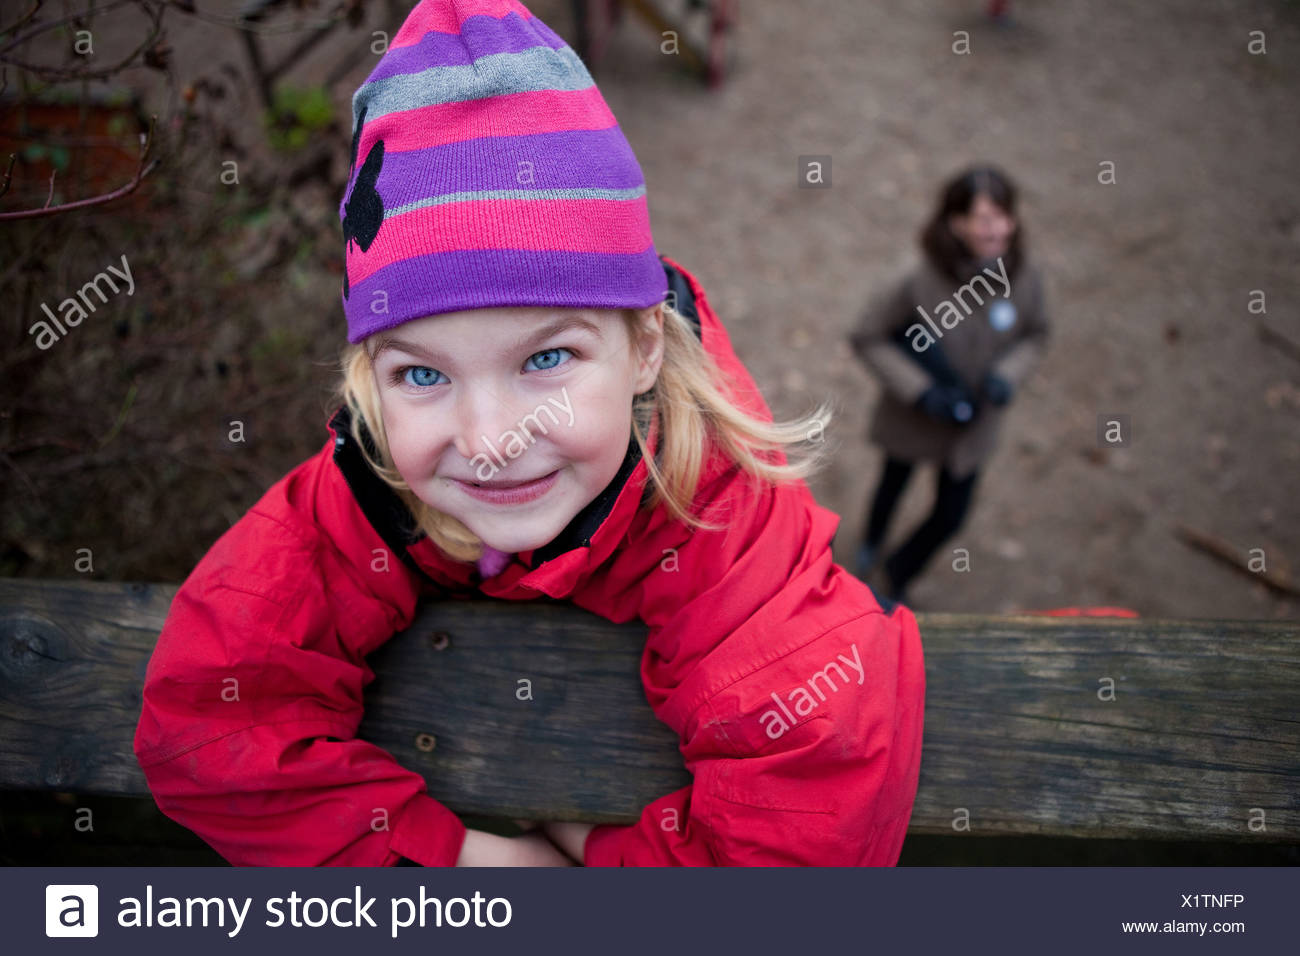 Portrait of a little girl in winter wear hanging on to a log with blurred woman in the background - Stock Image